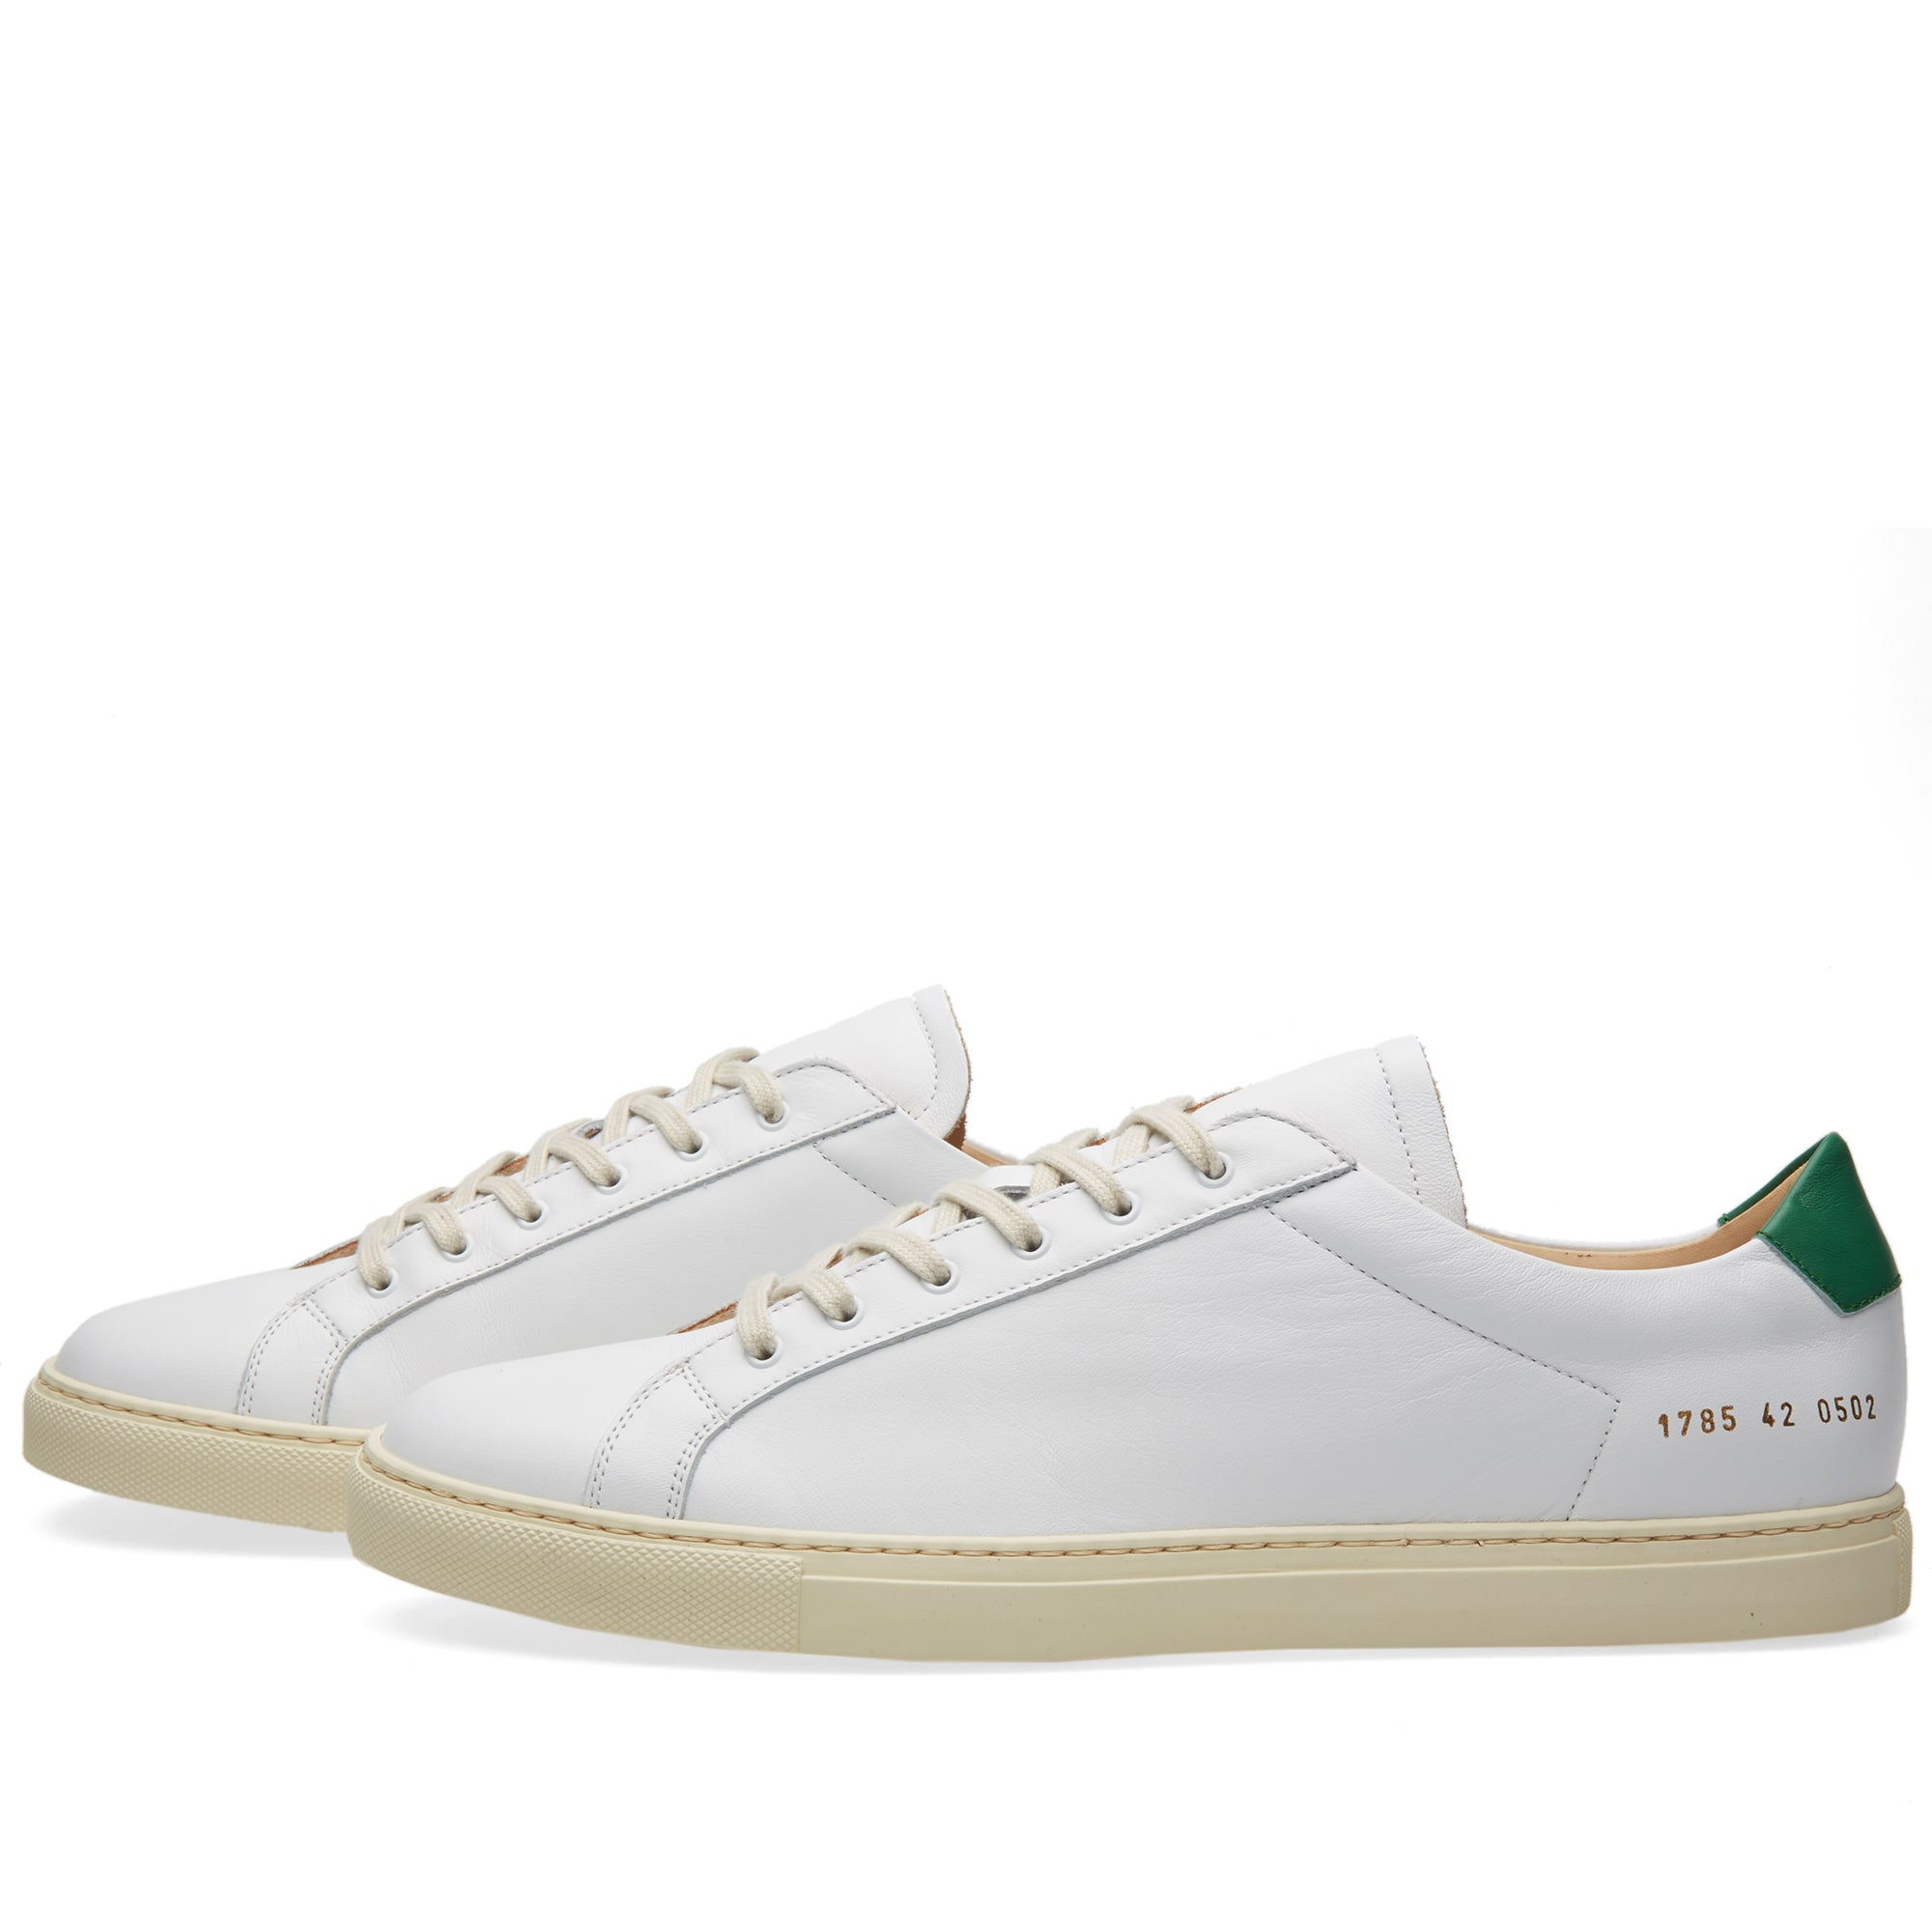 common projects achilles retro low white green. Black Bedroom Furniture Sets. Home Design Ideas